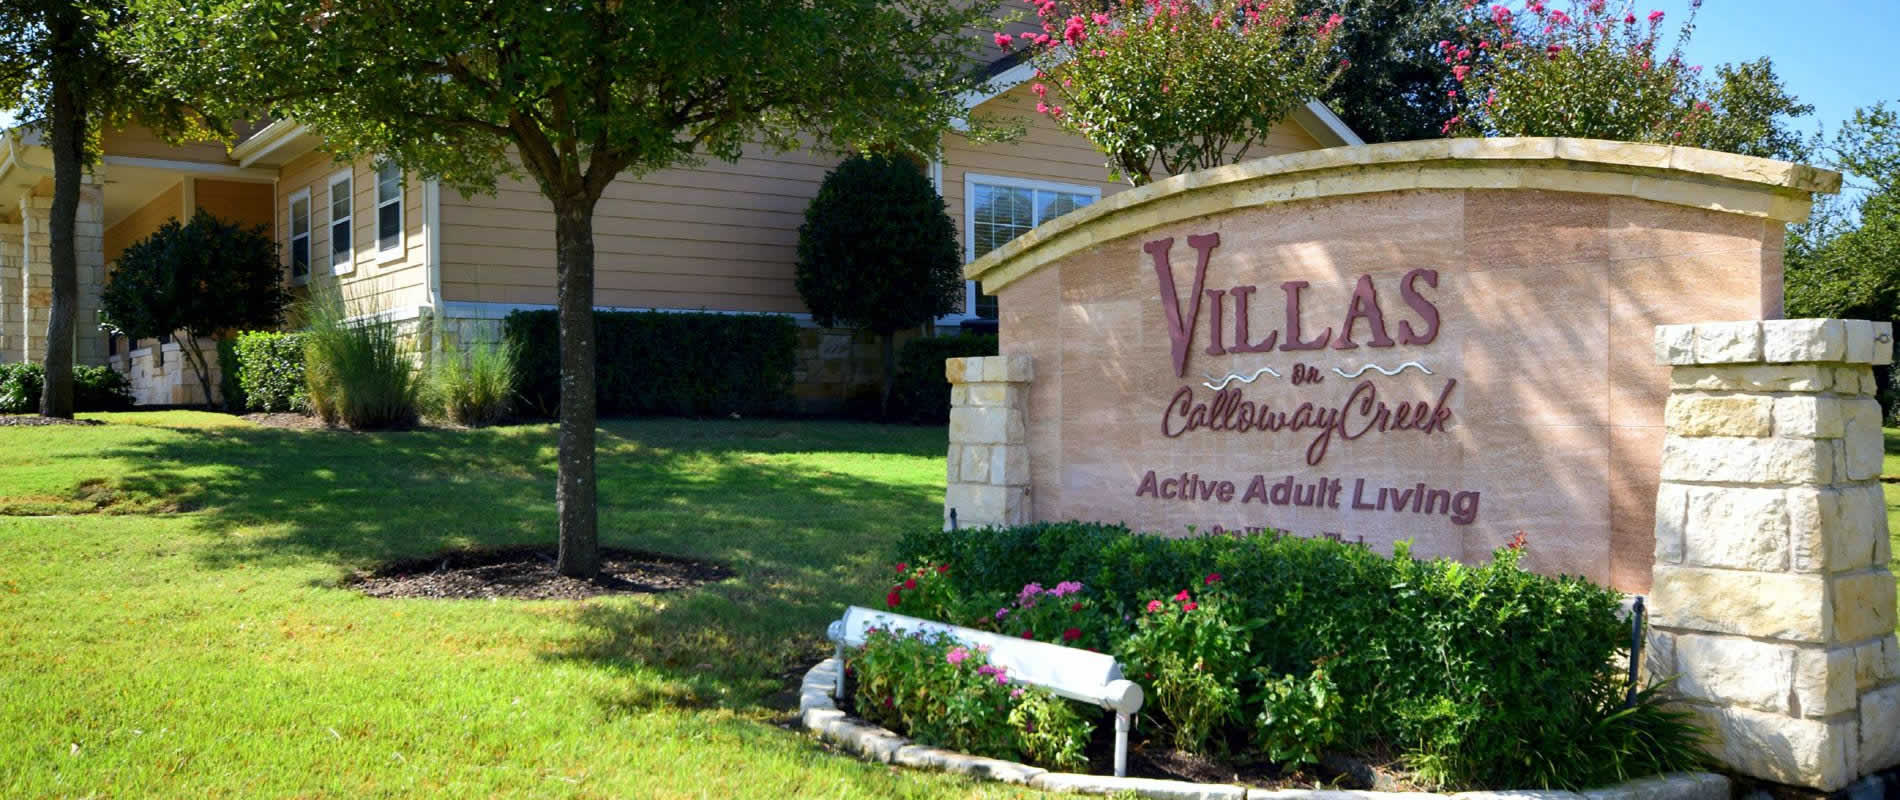 Villas on Calloway Creek | Hurst, TX 76053 | (817) 590-8621